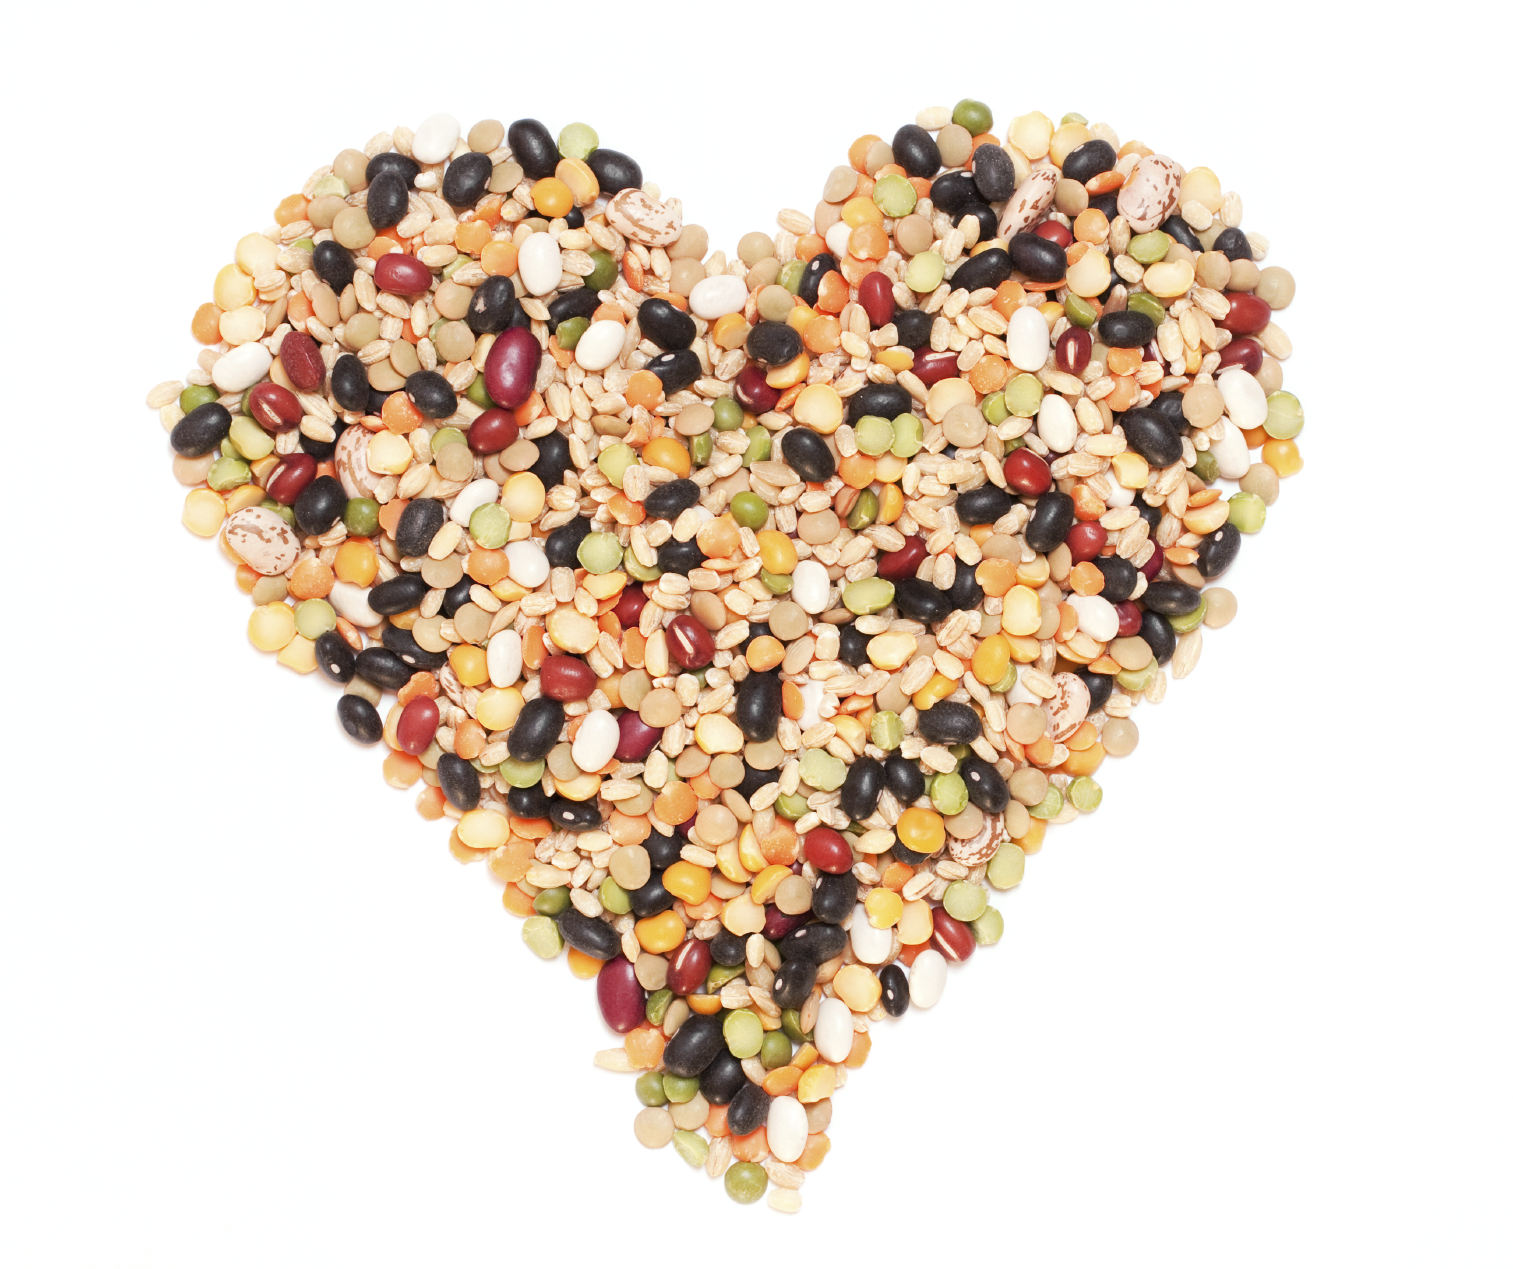 Beans and whole grains are great sources of healthy fats.